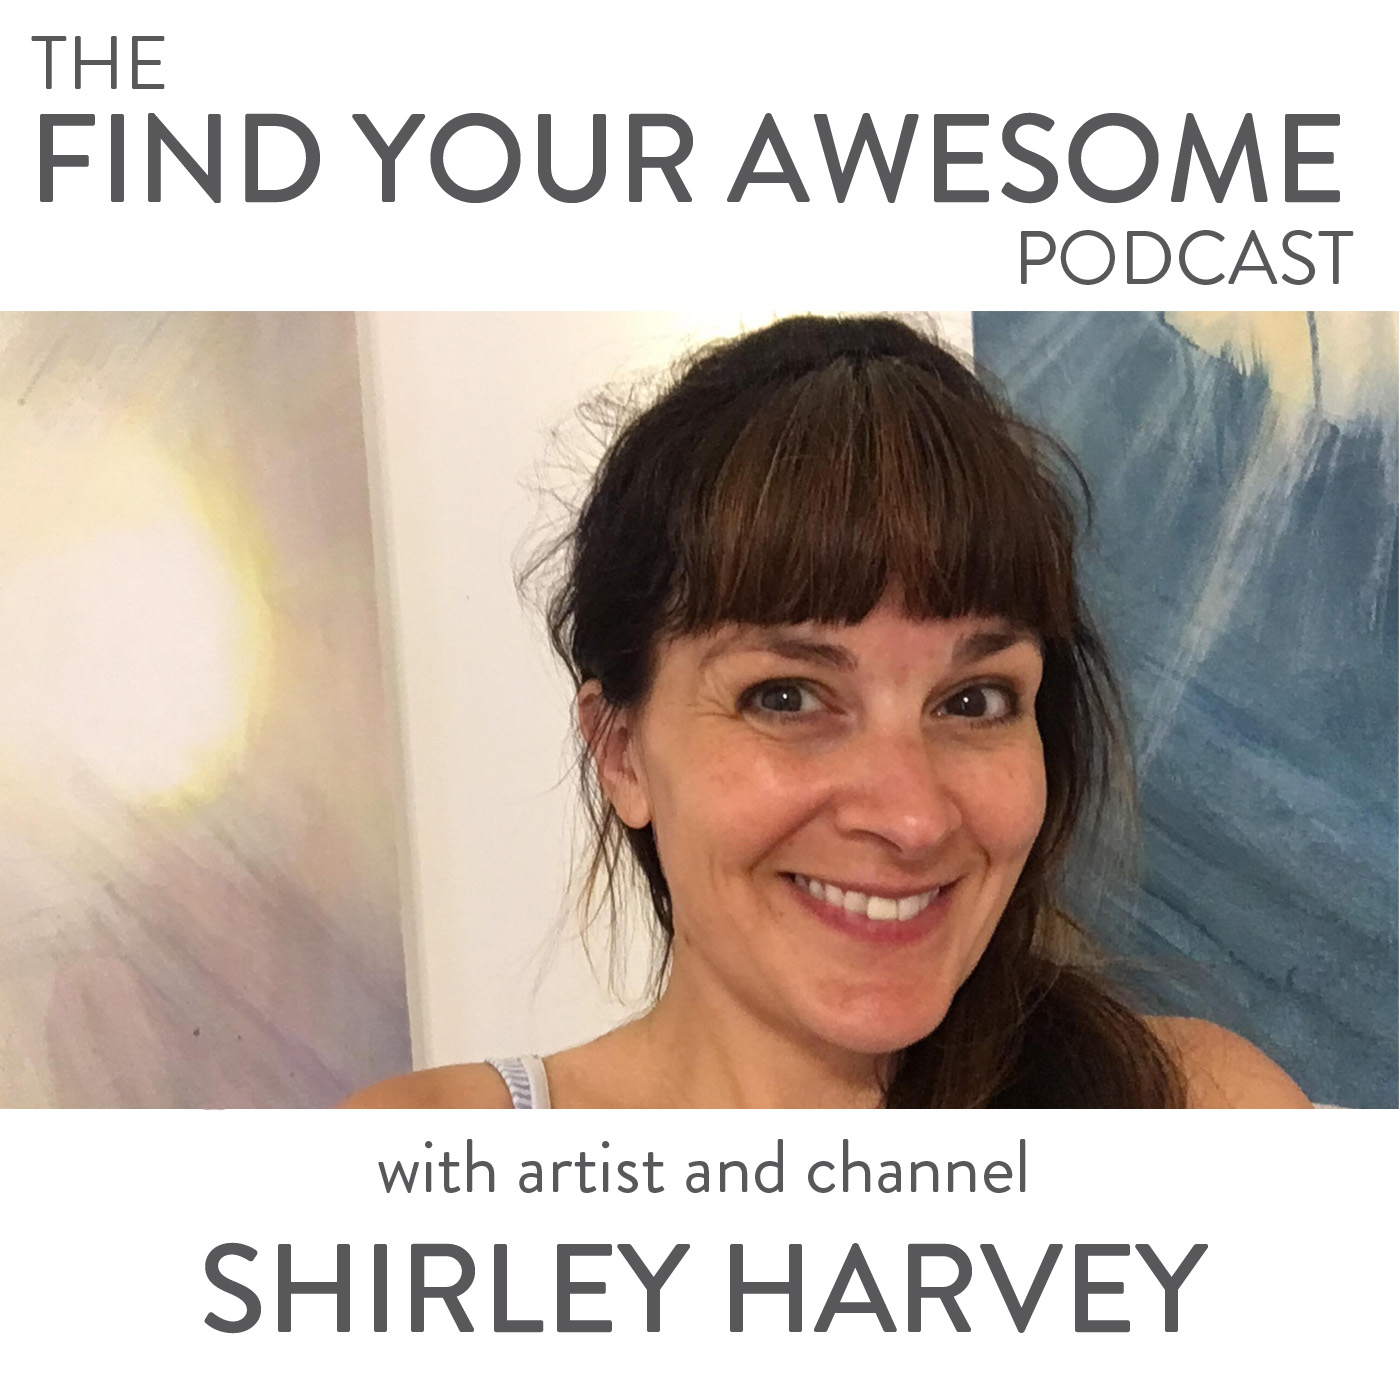 ShirleyHarvey_podcast_coverart.jpg